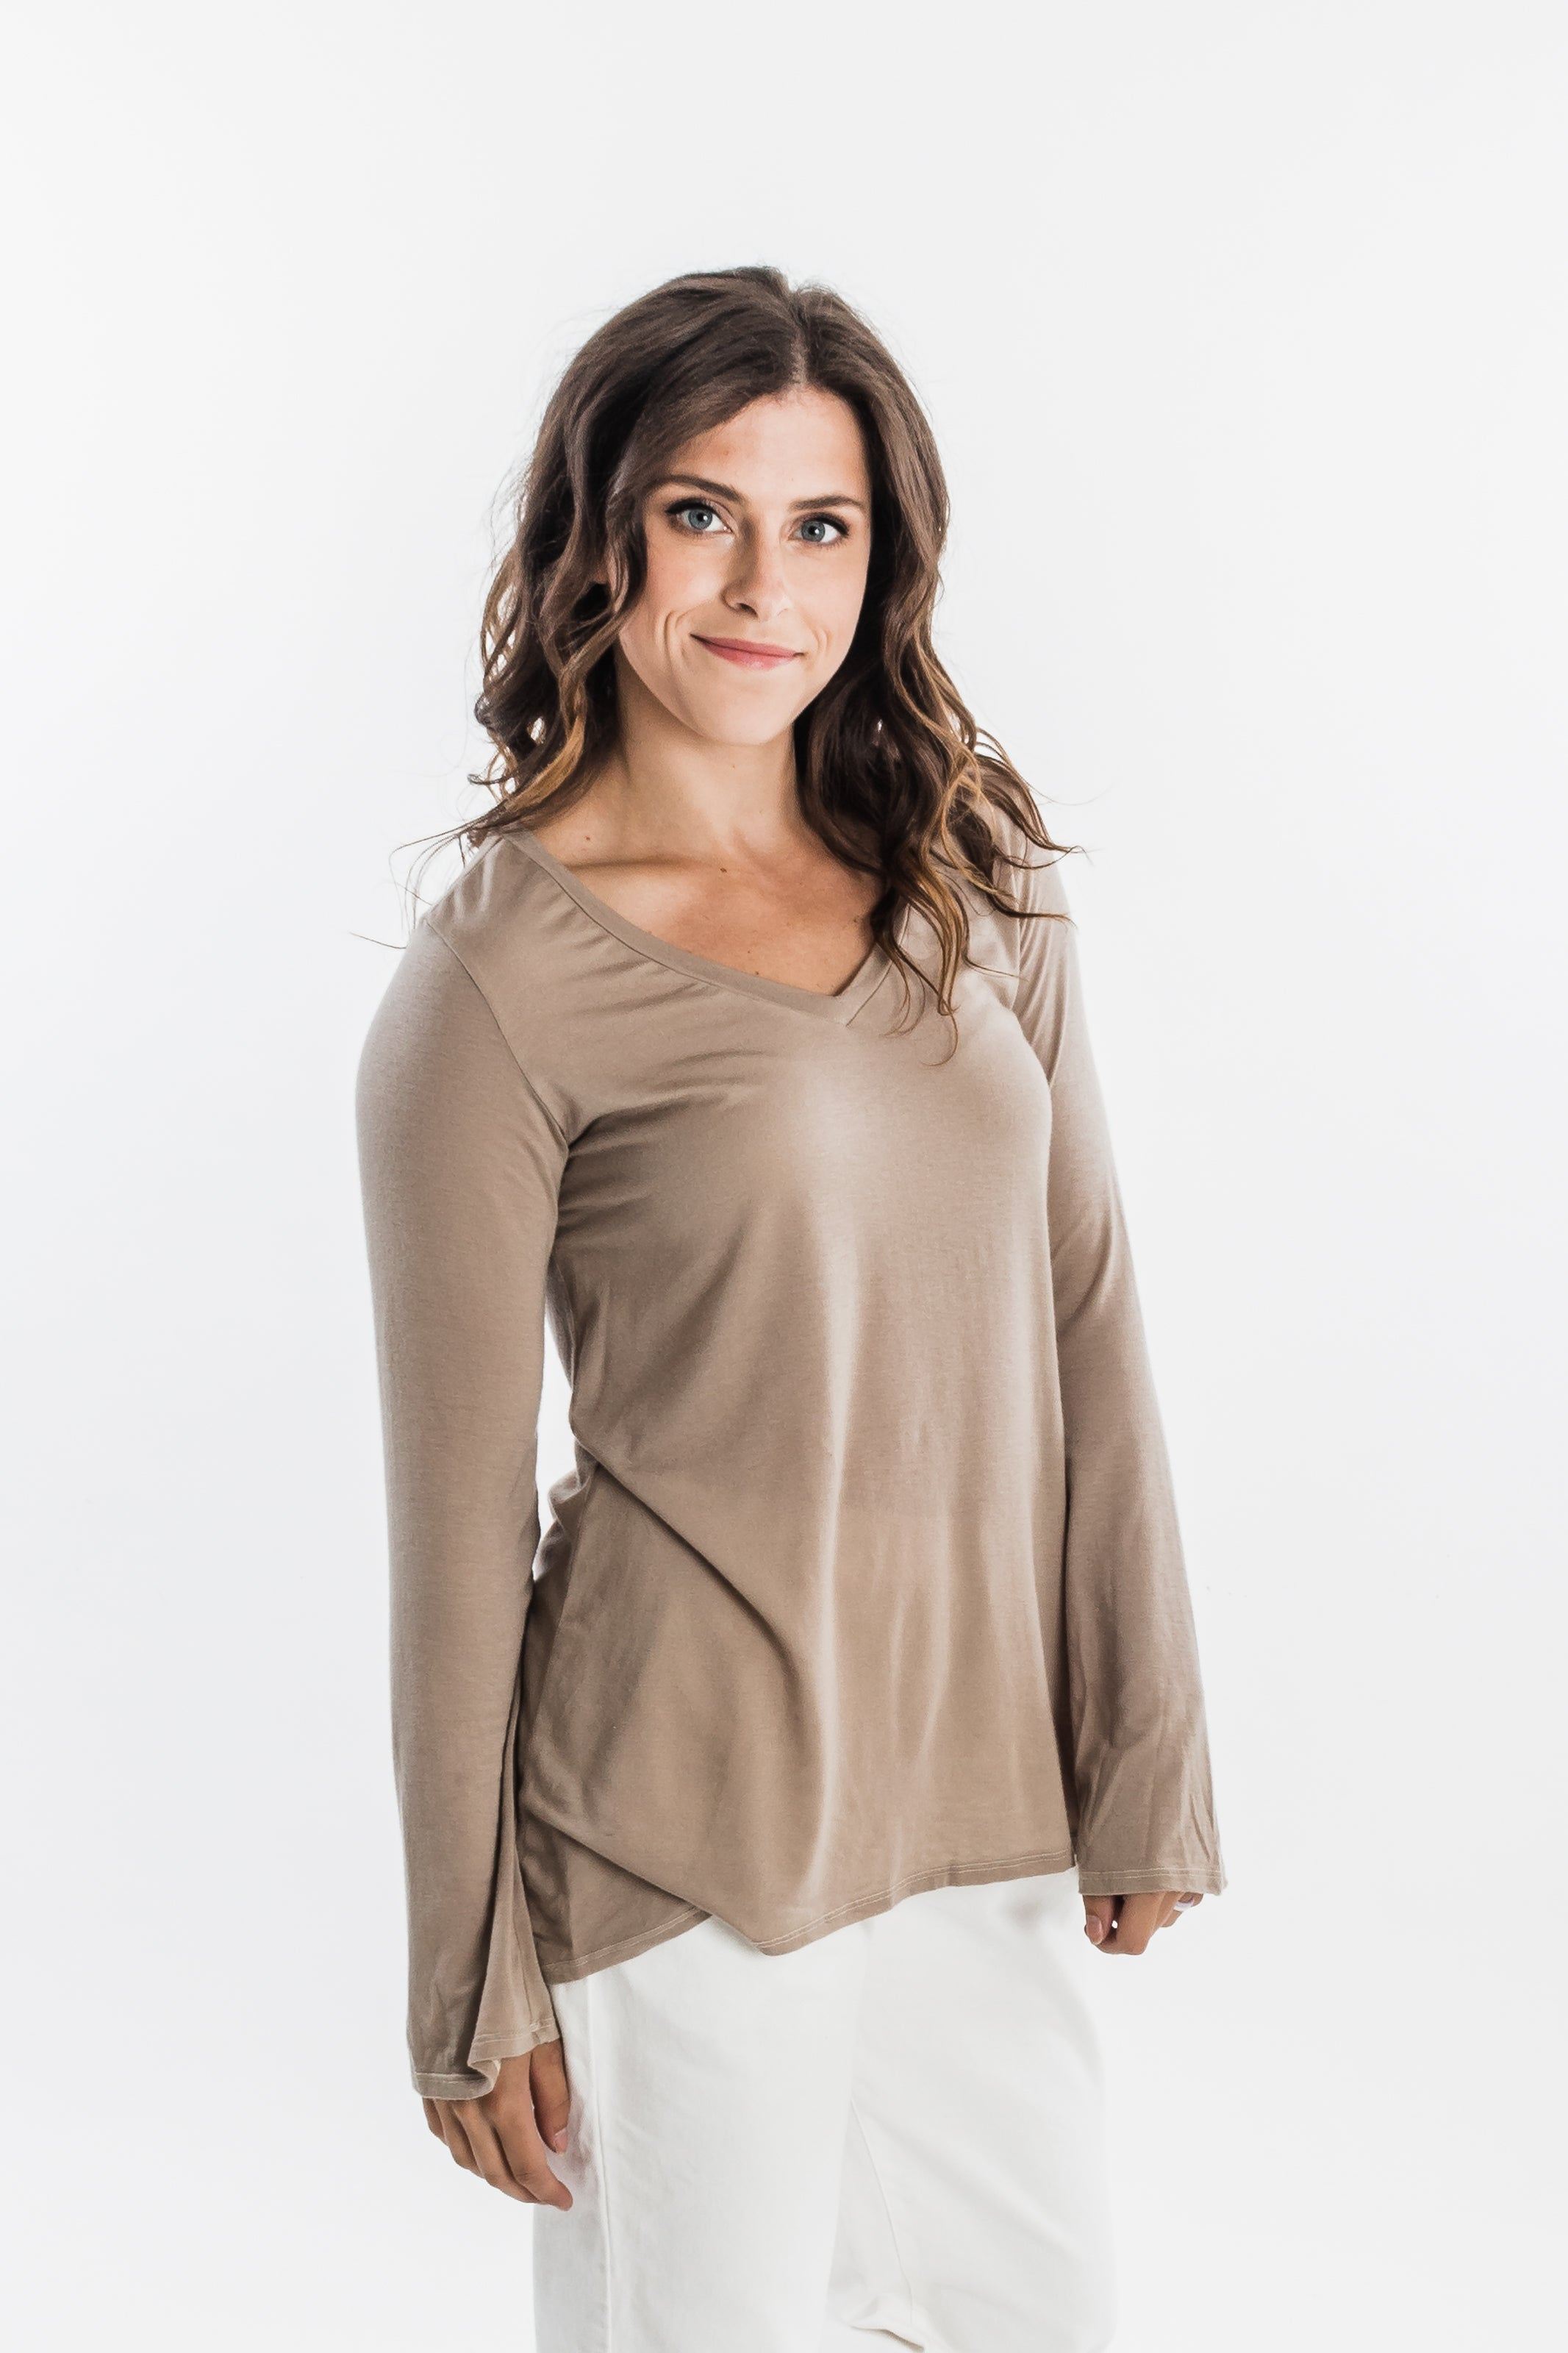 Groceries Apparel Tulum Top Clay | Women's Bell Sleeve Tops